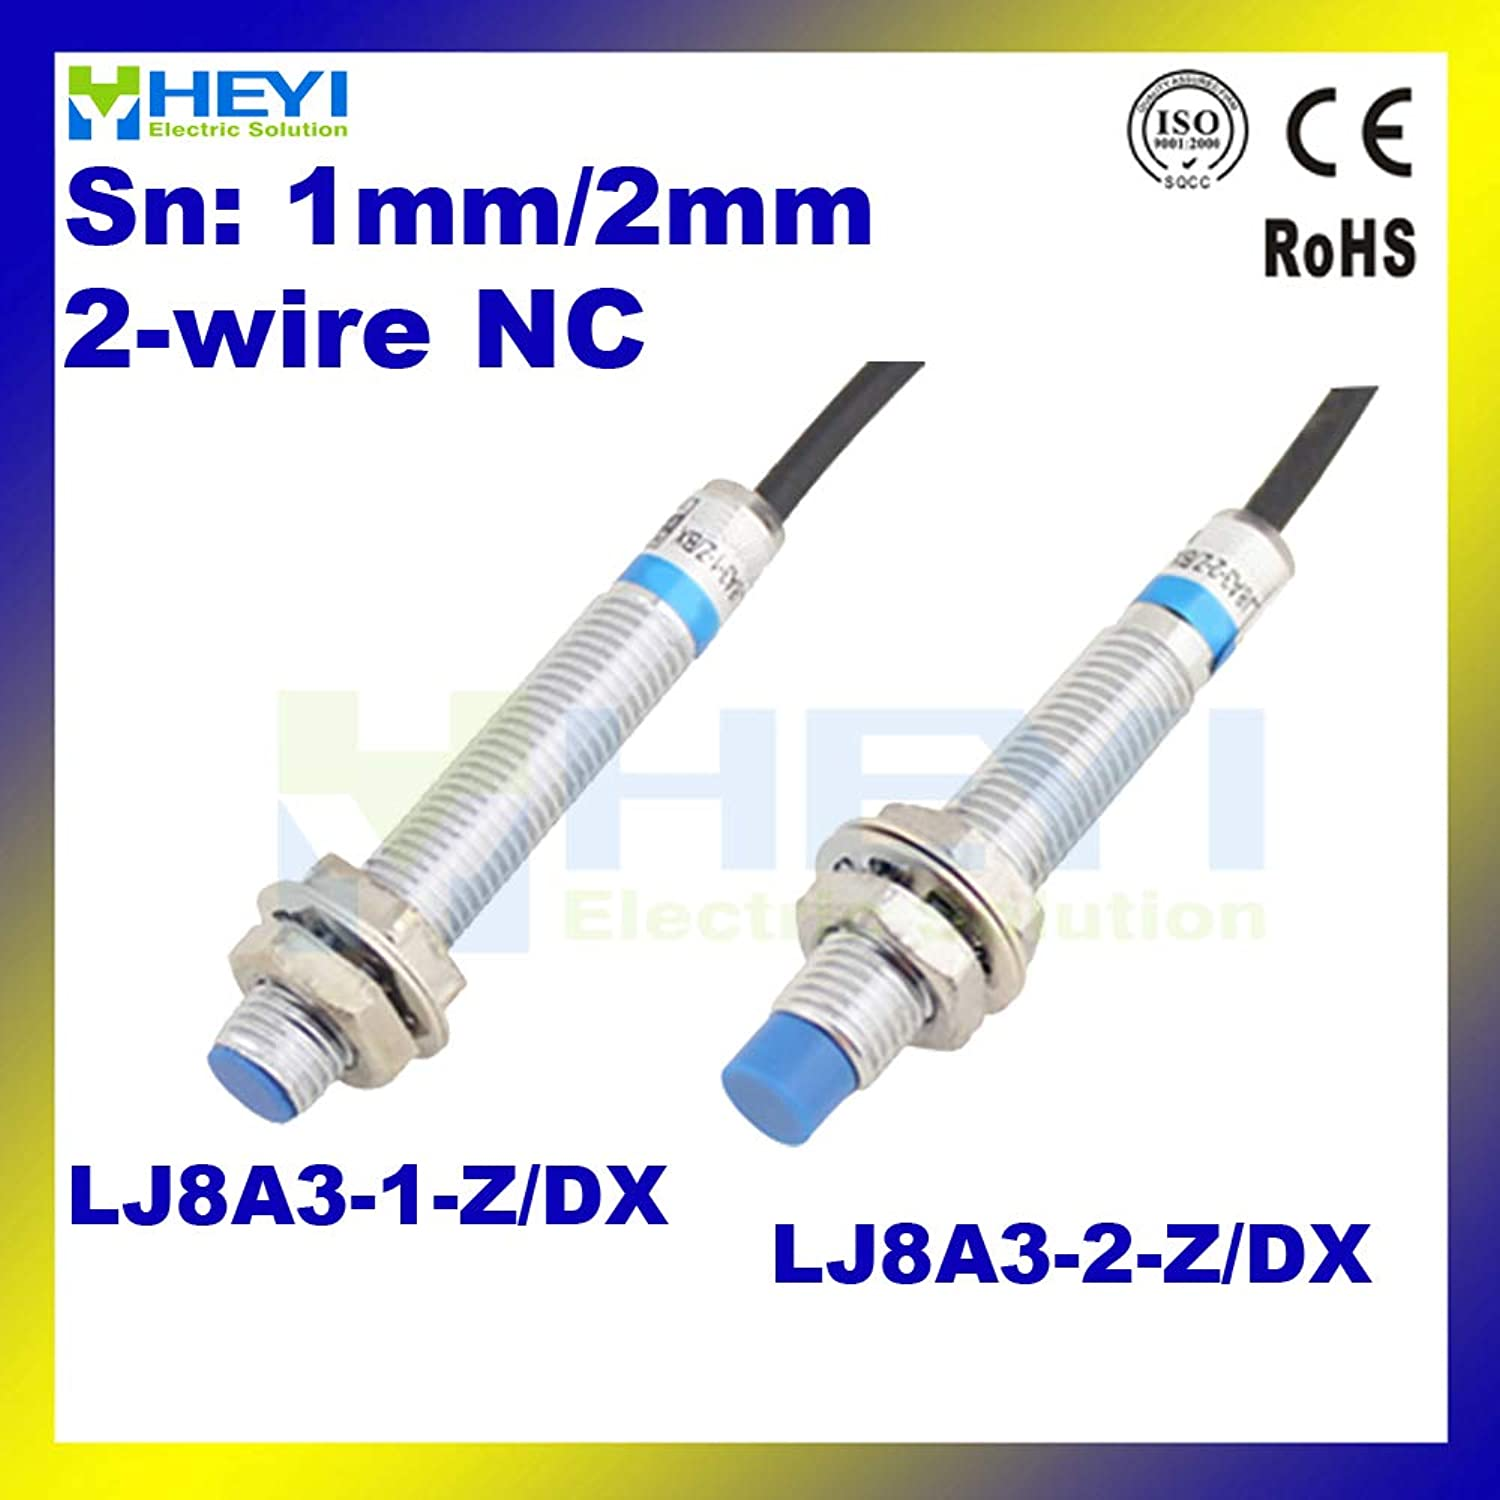 High Quality LJ8A31Z DX LJ8A32Z DX Inductive Proximity Sensor NC Sn 1mm or 2mm 2Wire Proximity Switch